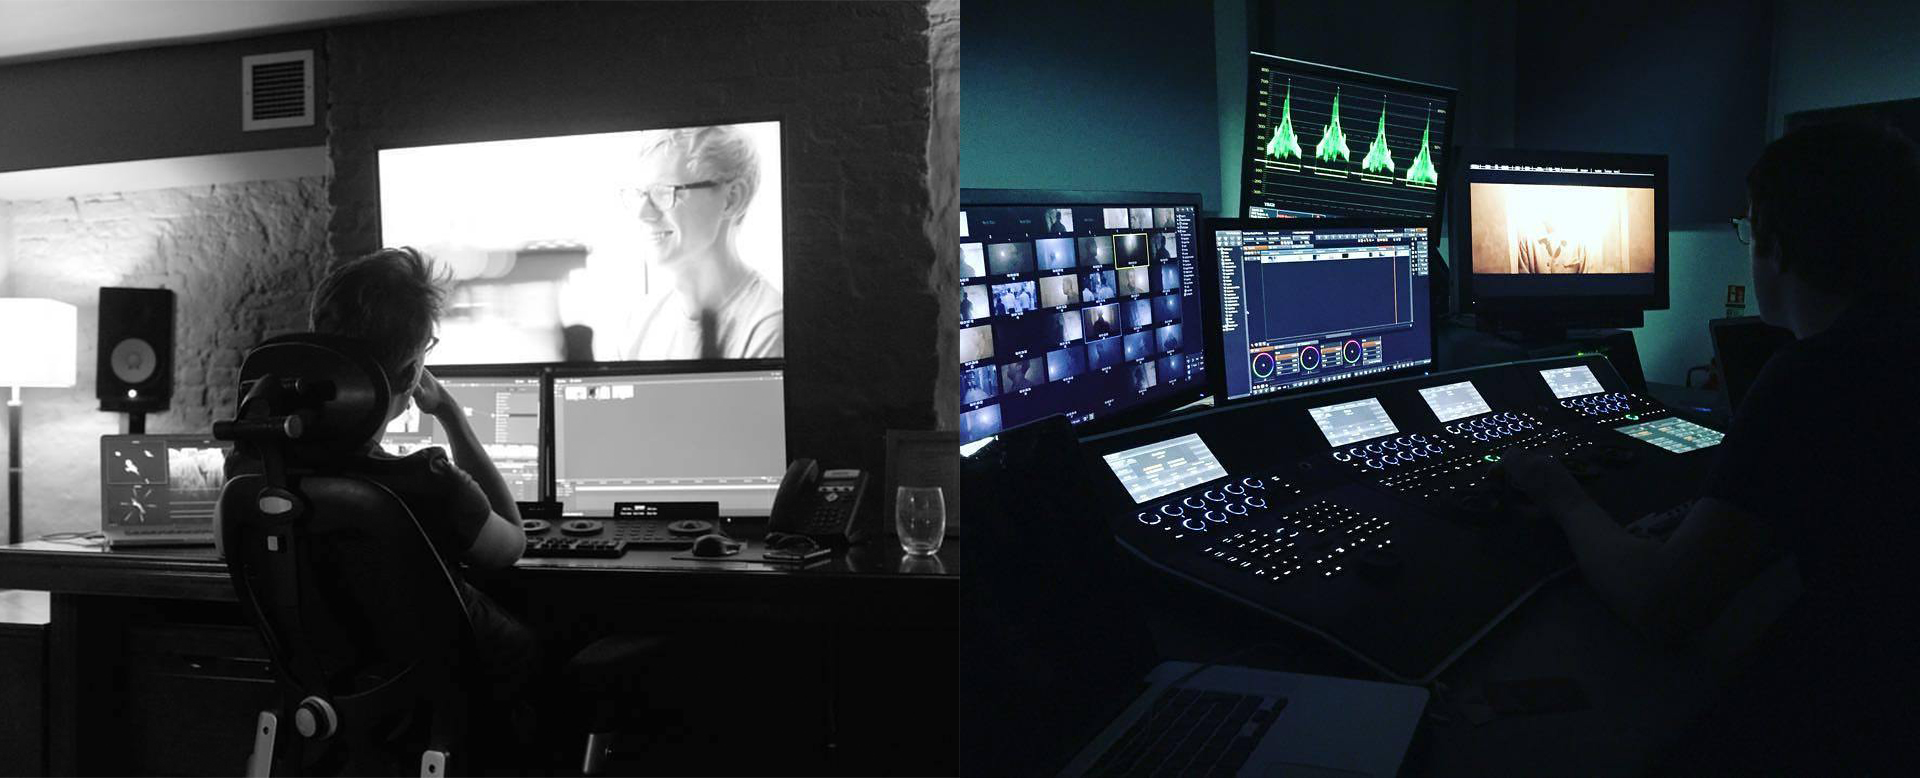 Grading on a Resolve System on the Left and a Nucoda System on the Right.